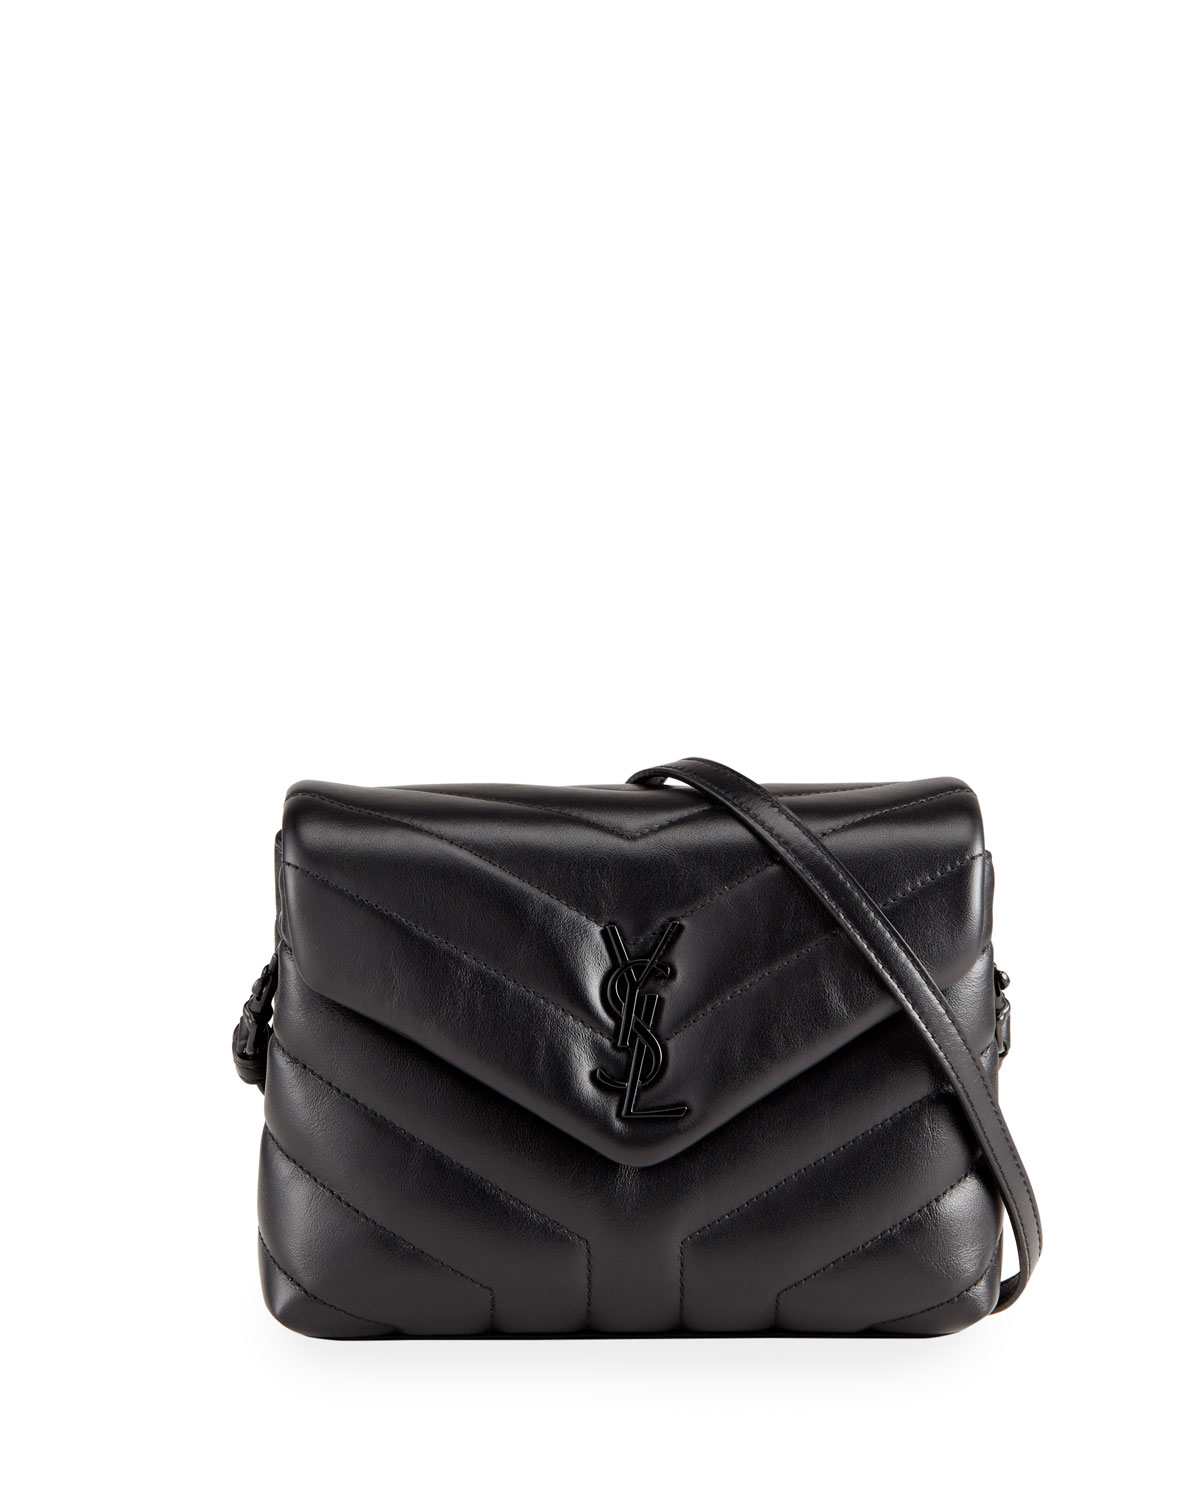 ceae322d9e Saint Laurent Loulou Toy Monogram YSL Quilted Shoulder Bag